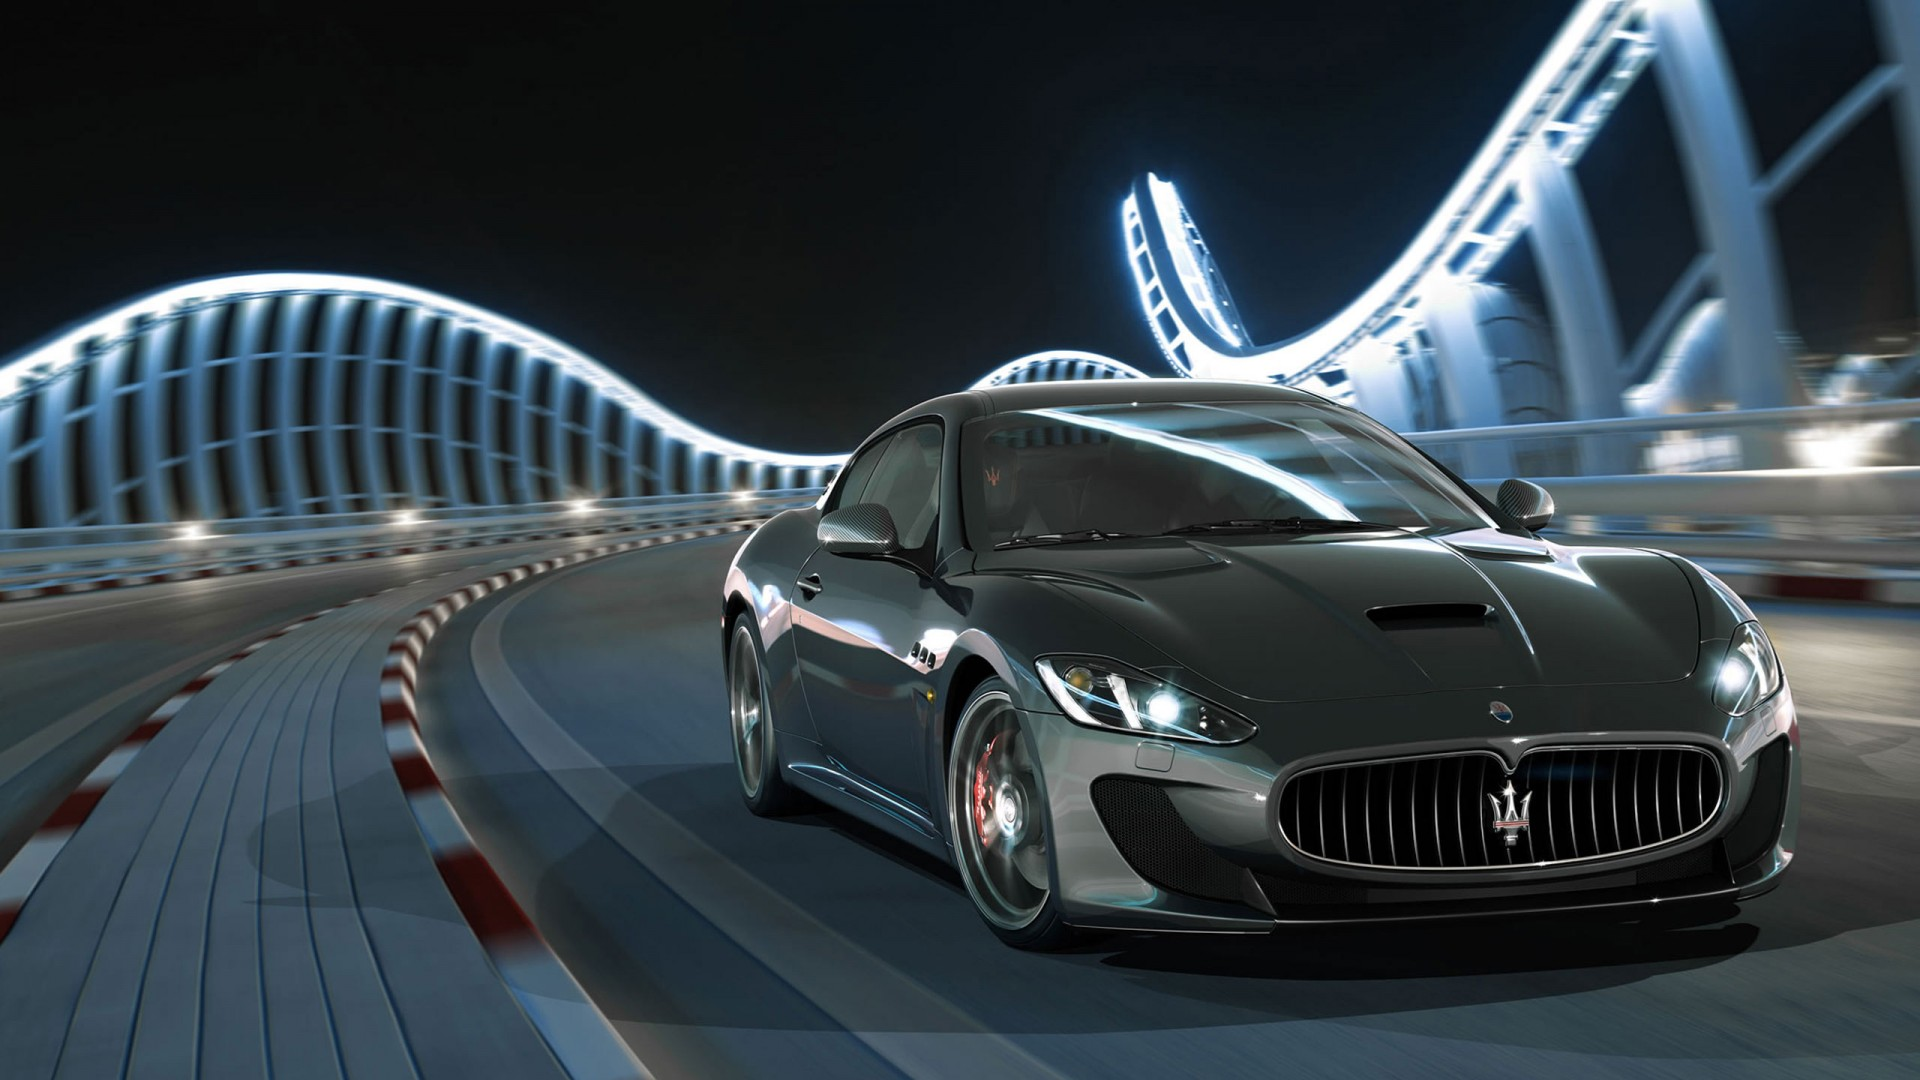 2014 Maserati Gt Mc Stradale Wallpaper Hd Car Wallpapers